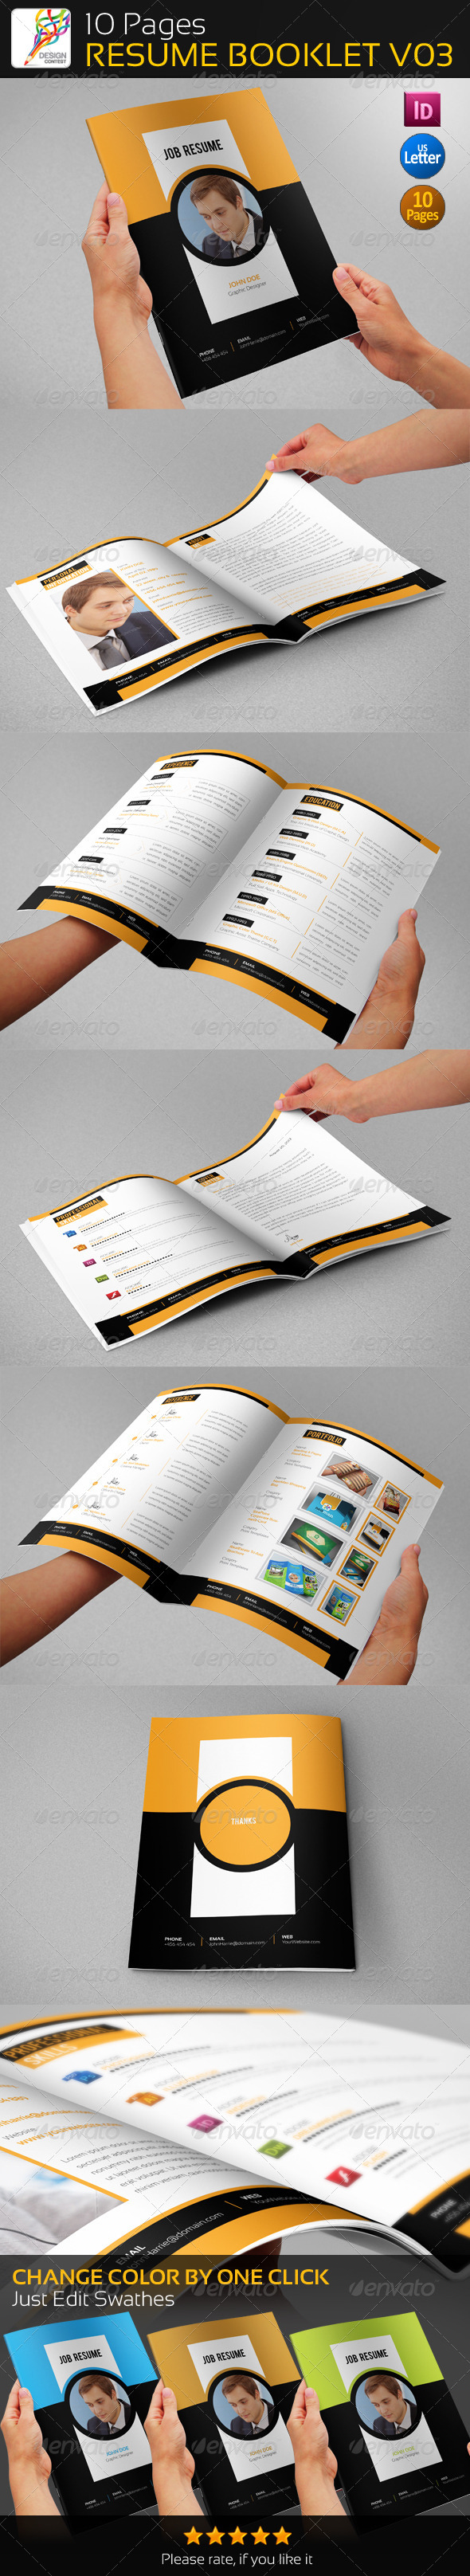 10 Pages Professional Resume Booklet V03